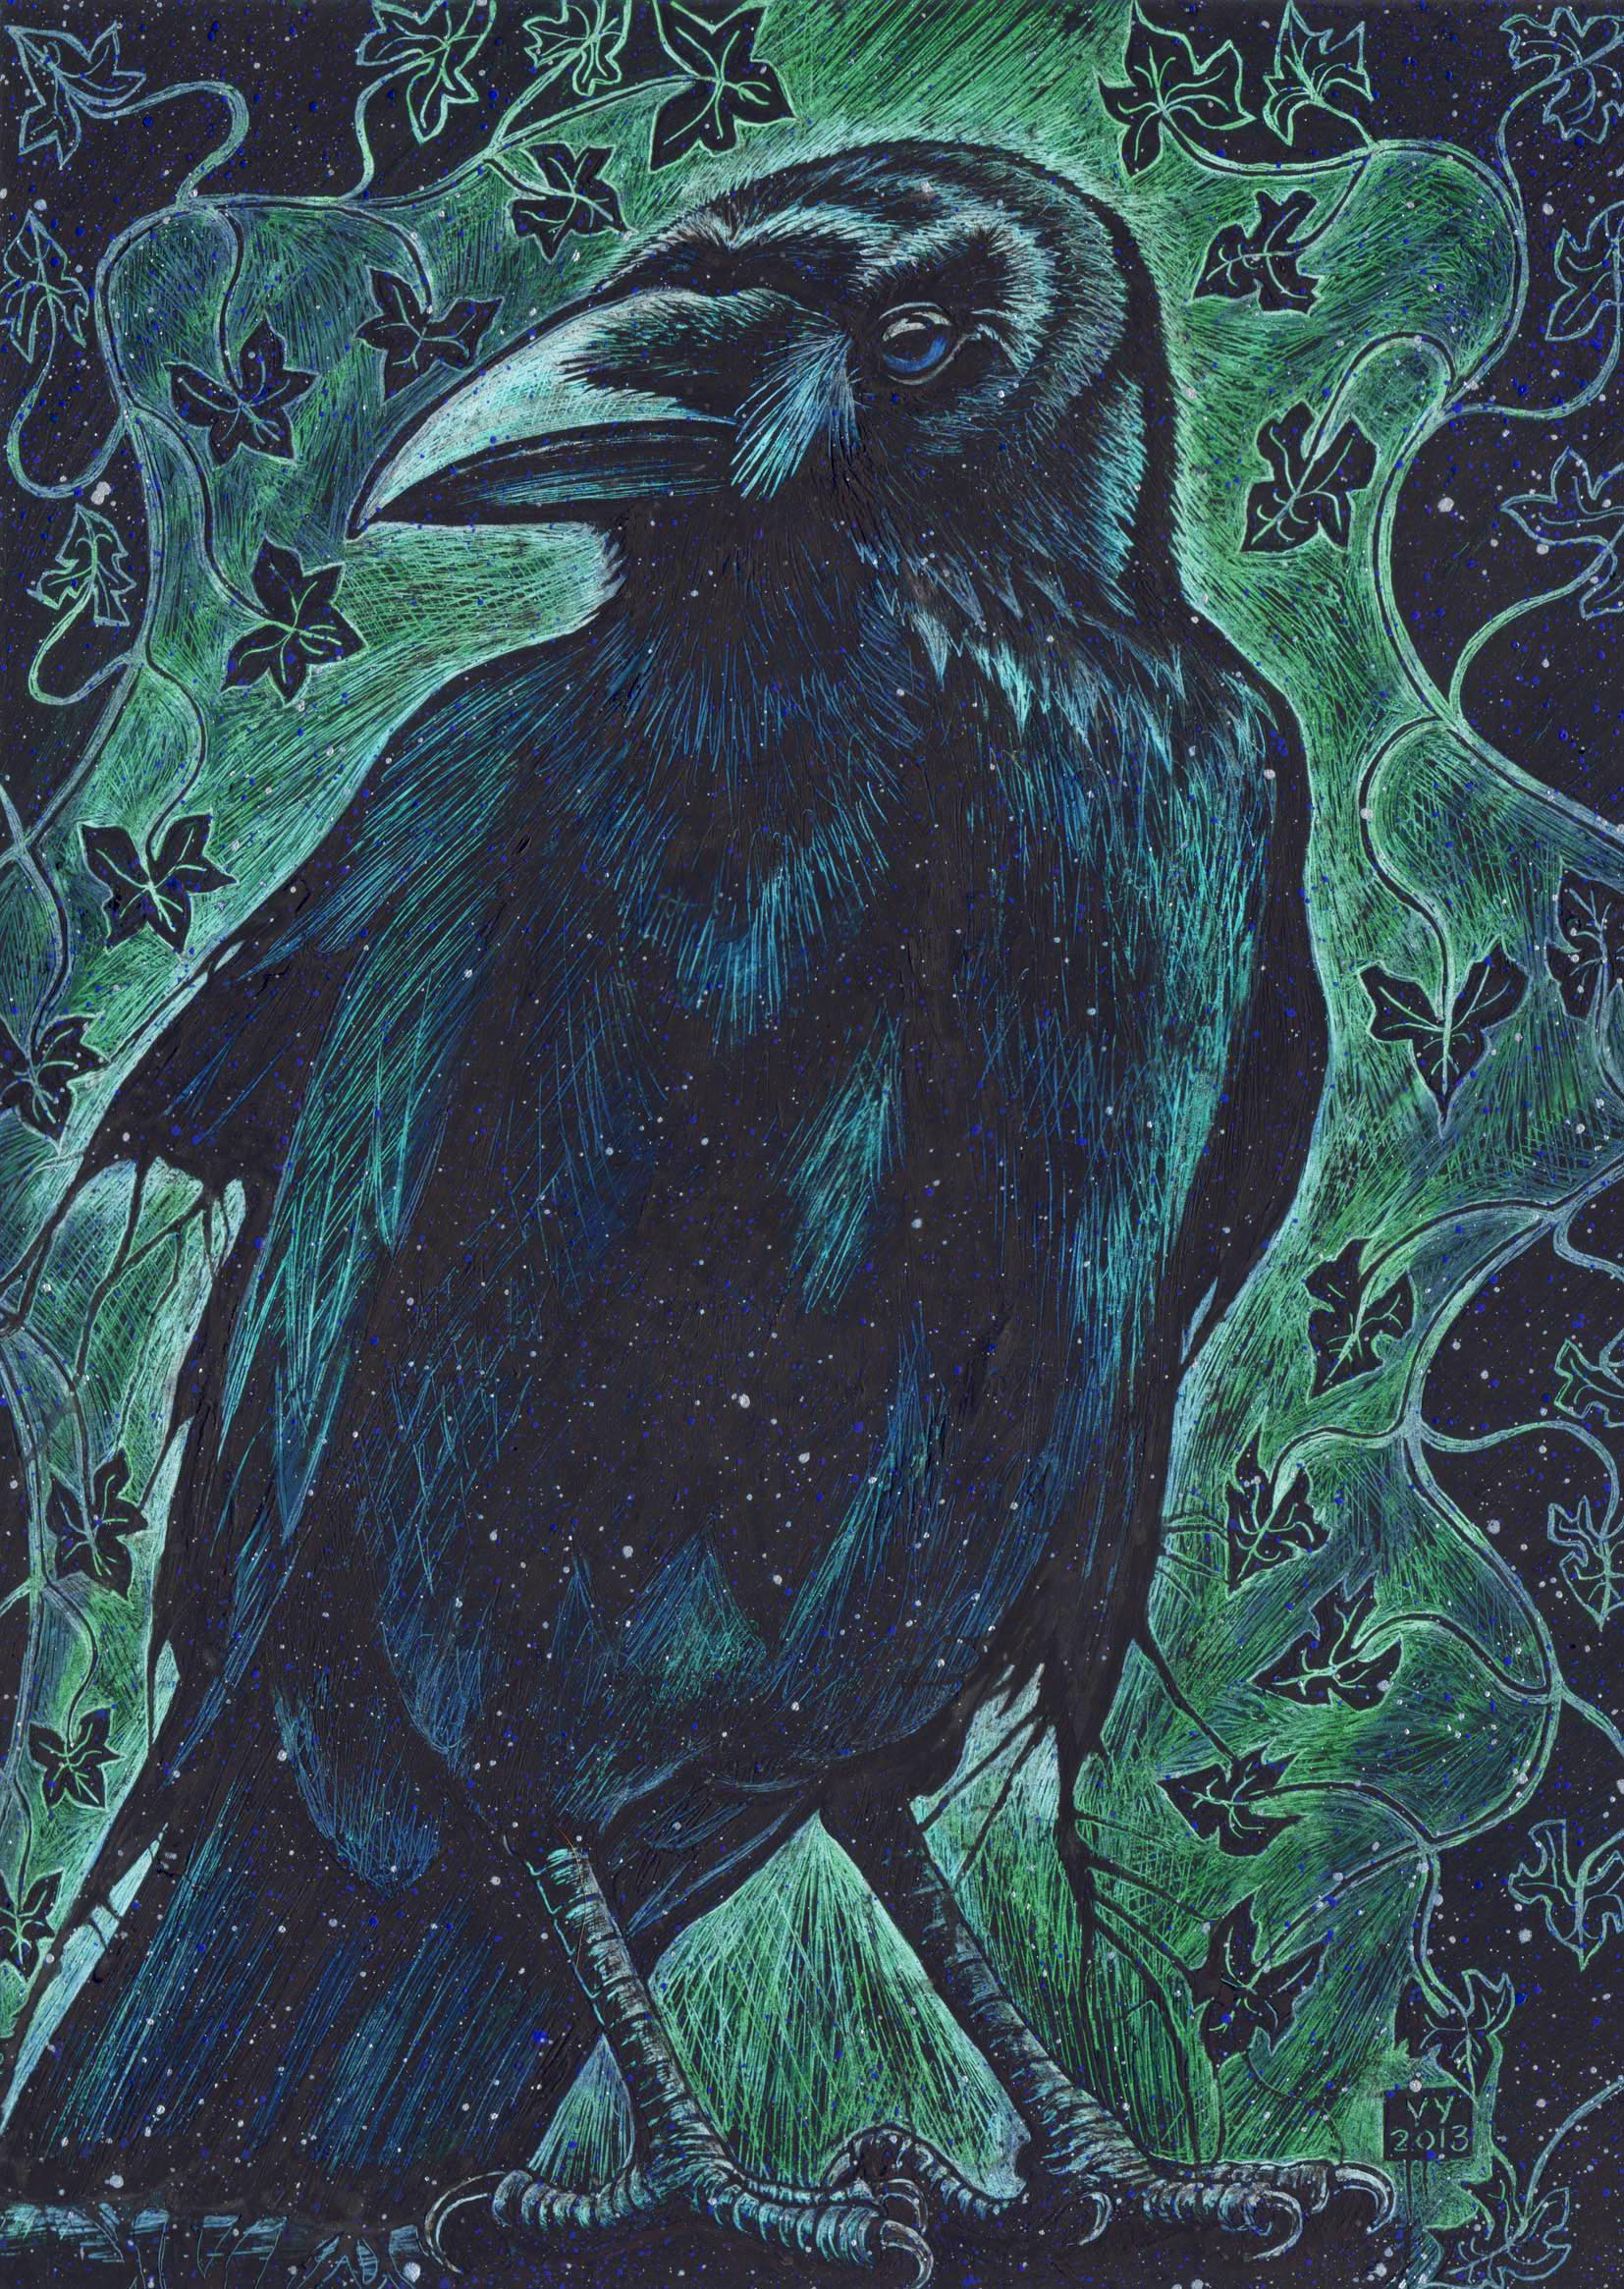 'Crow and Ivy' card